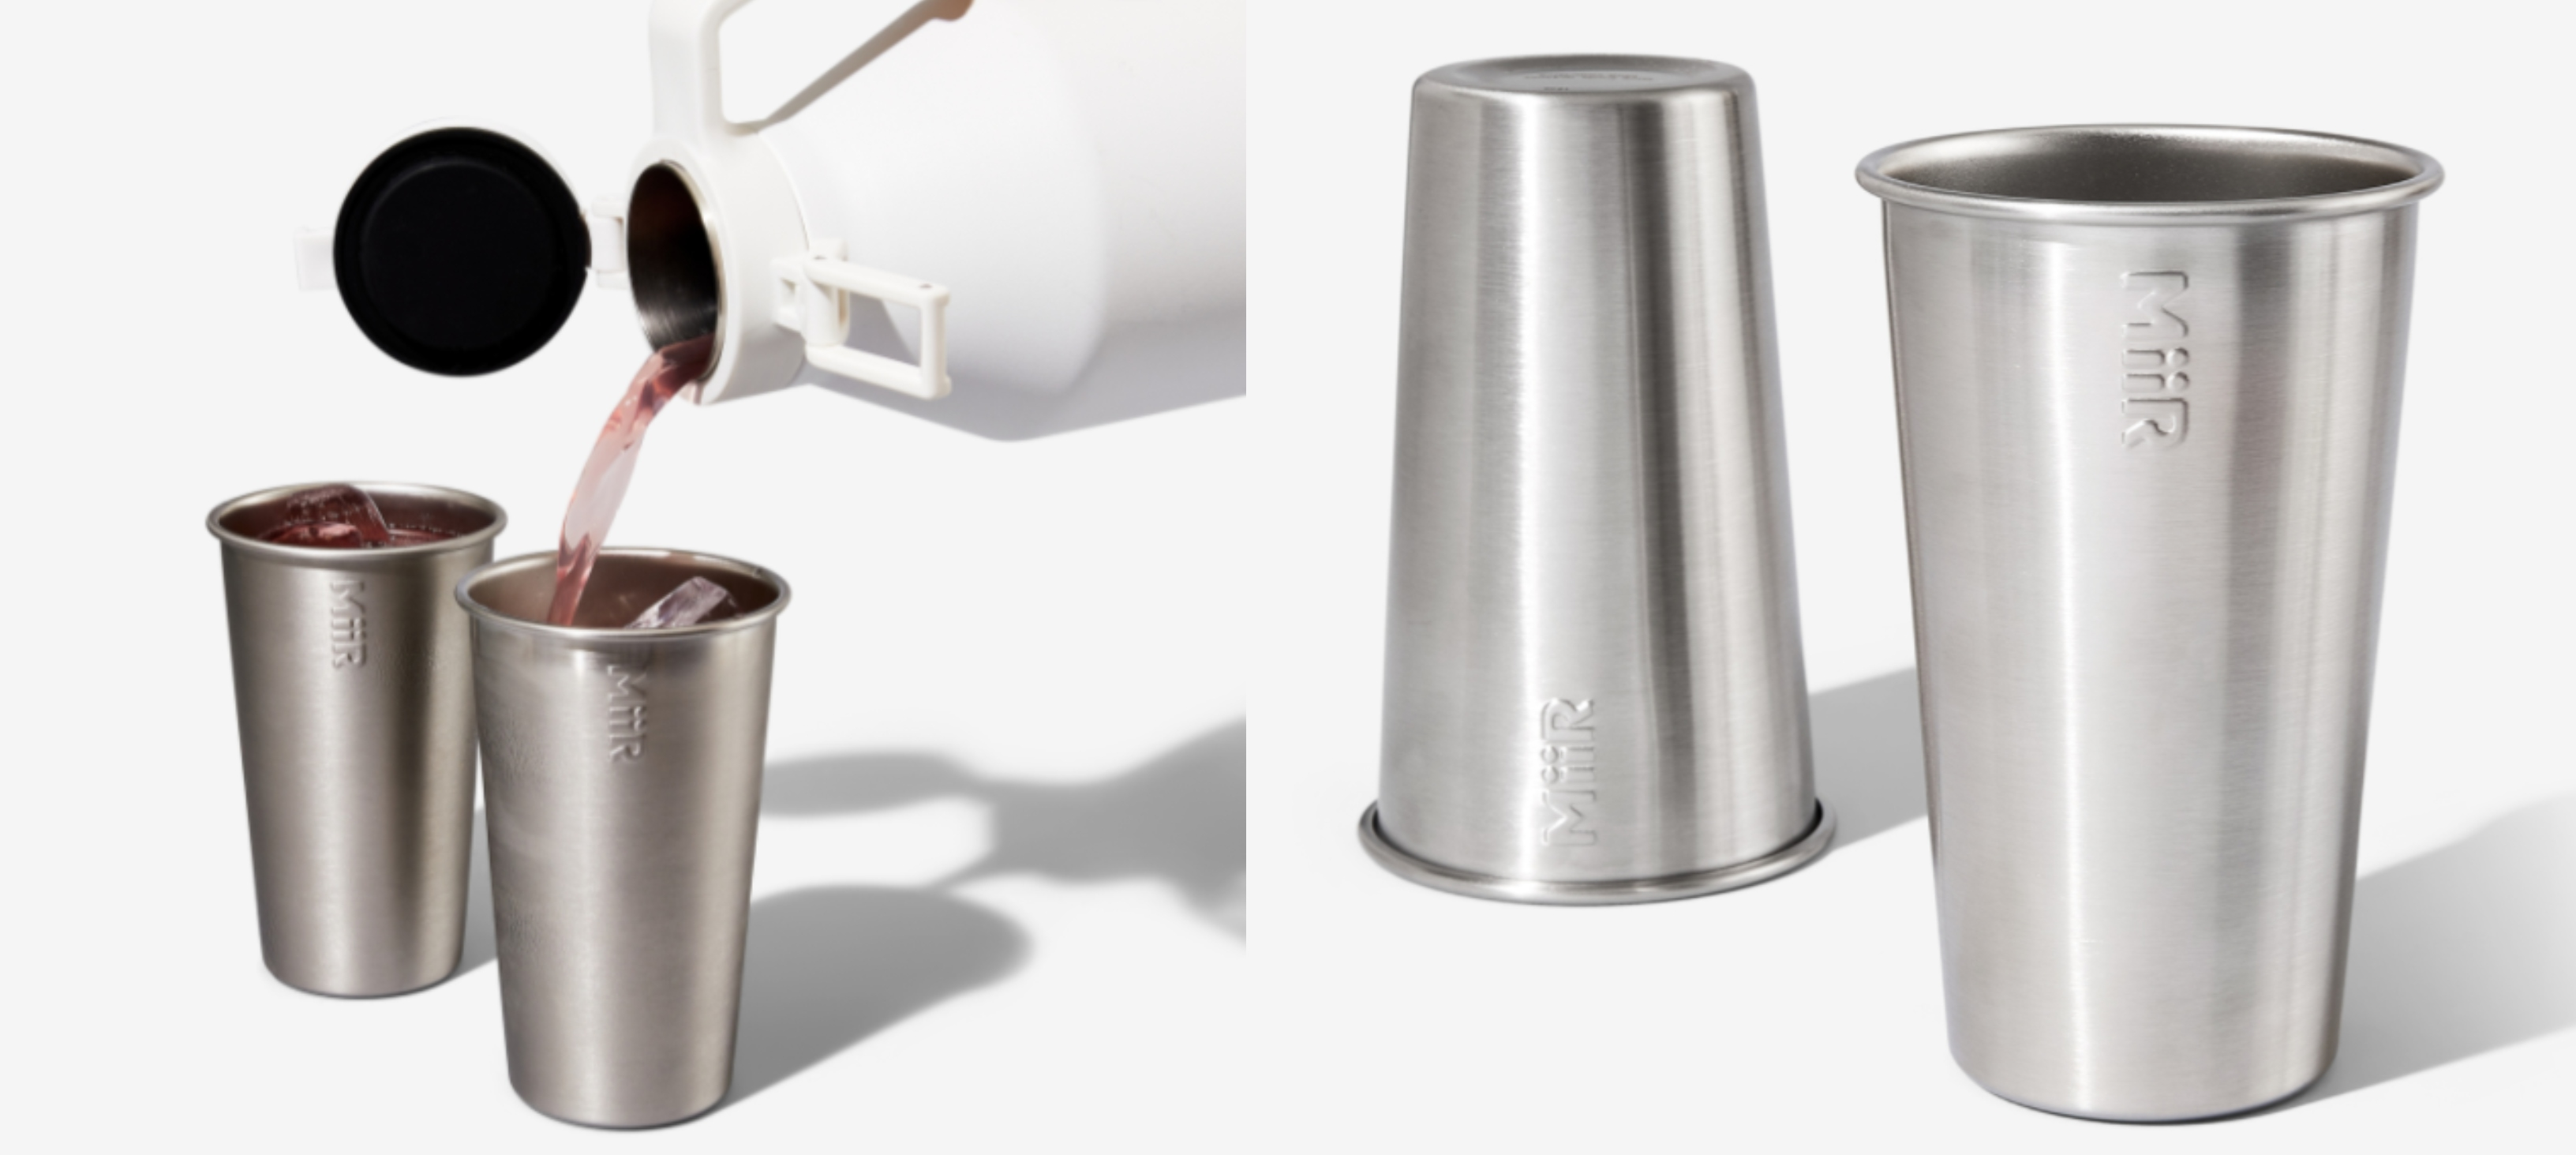 MiiR Pint Cup Stainless